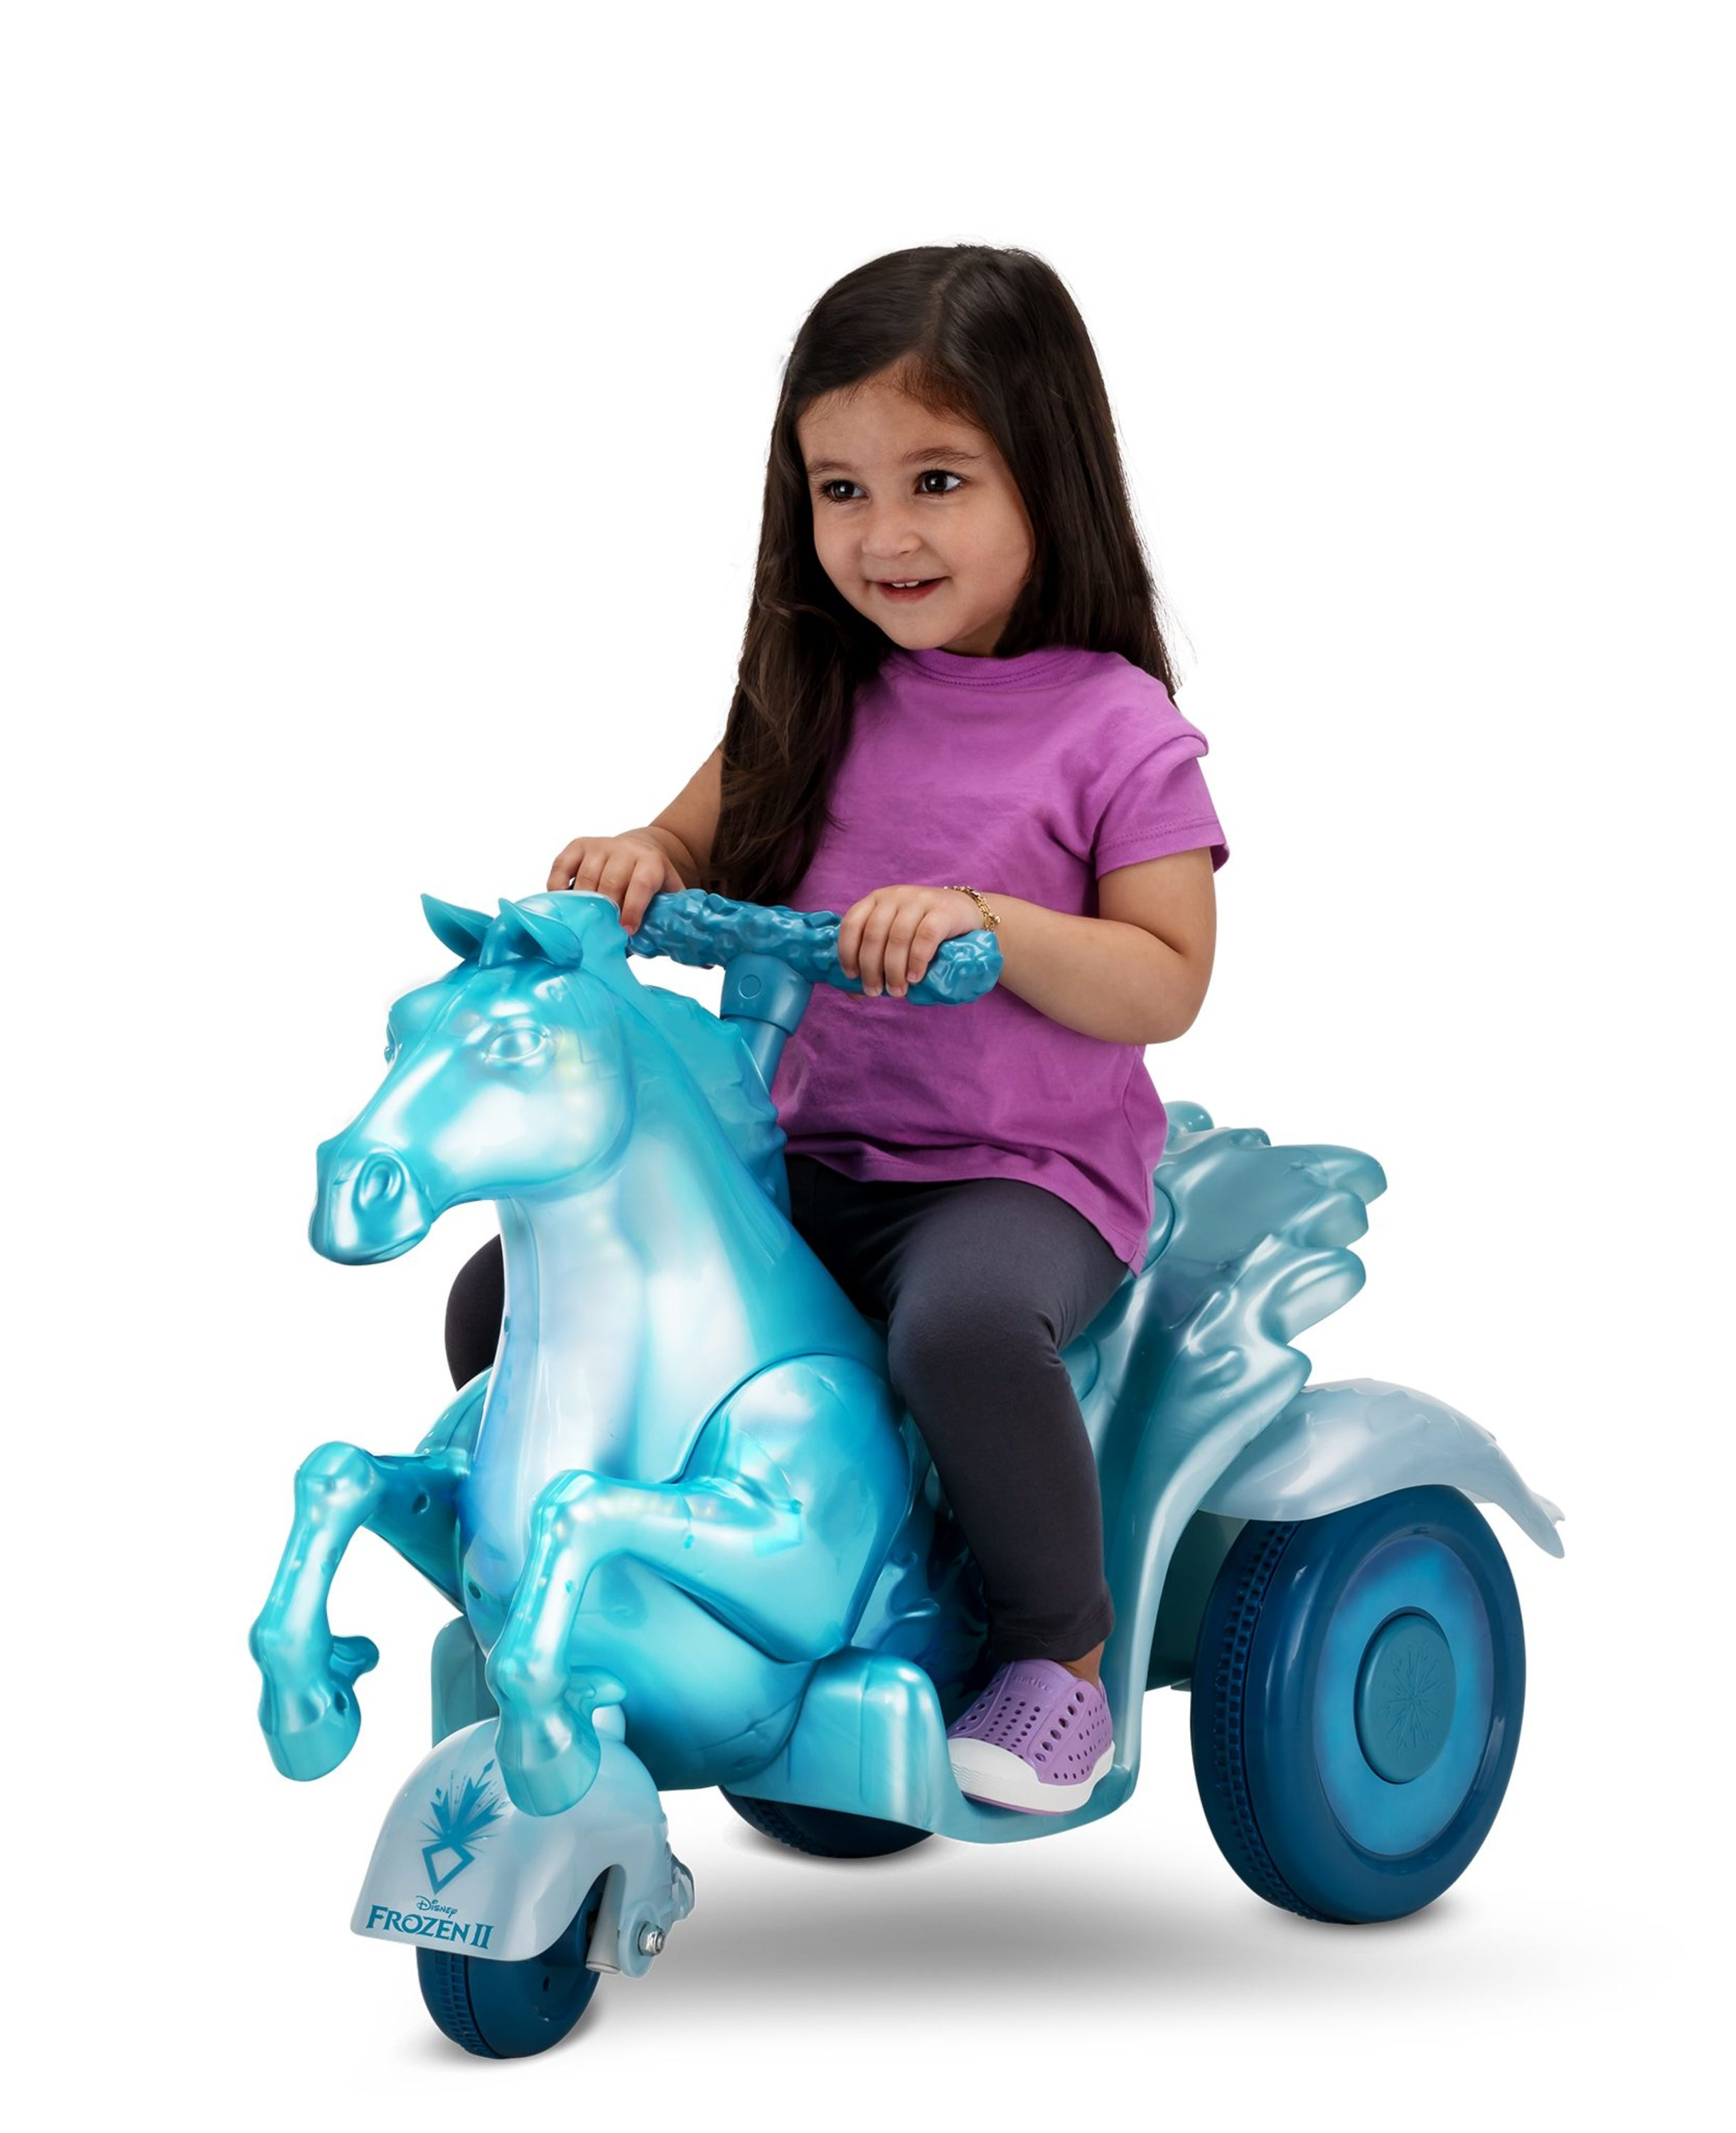 Disney Frozen 2 Water Nokk Ride On Toy By Kid Trax Walmart Com Walmart Com